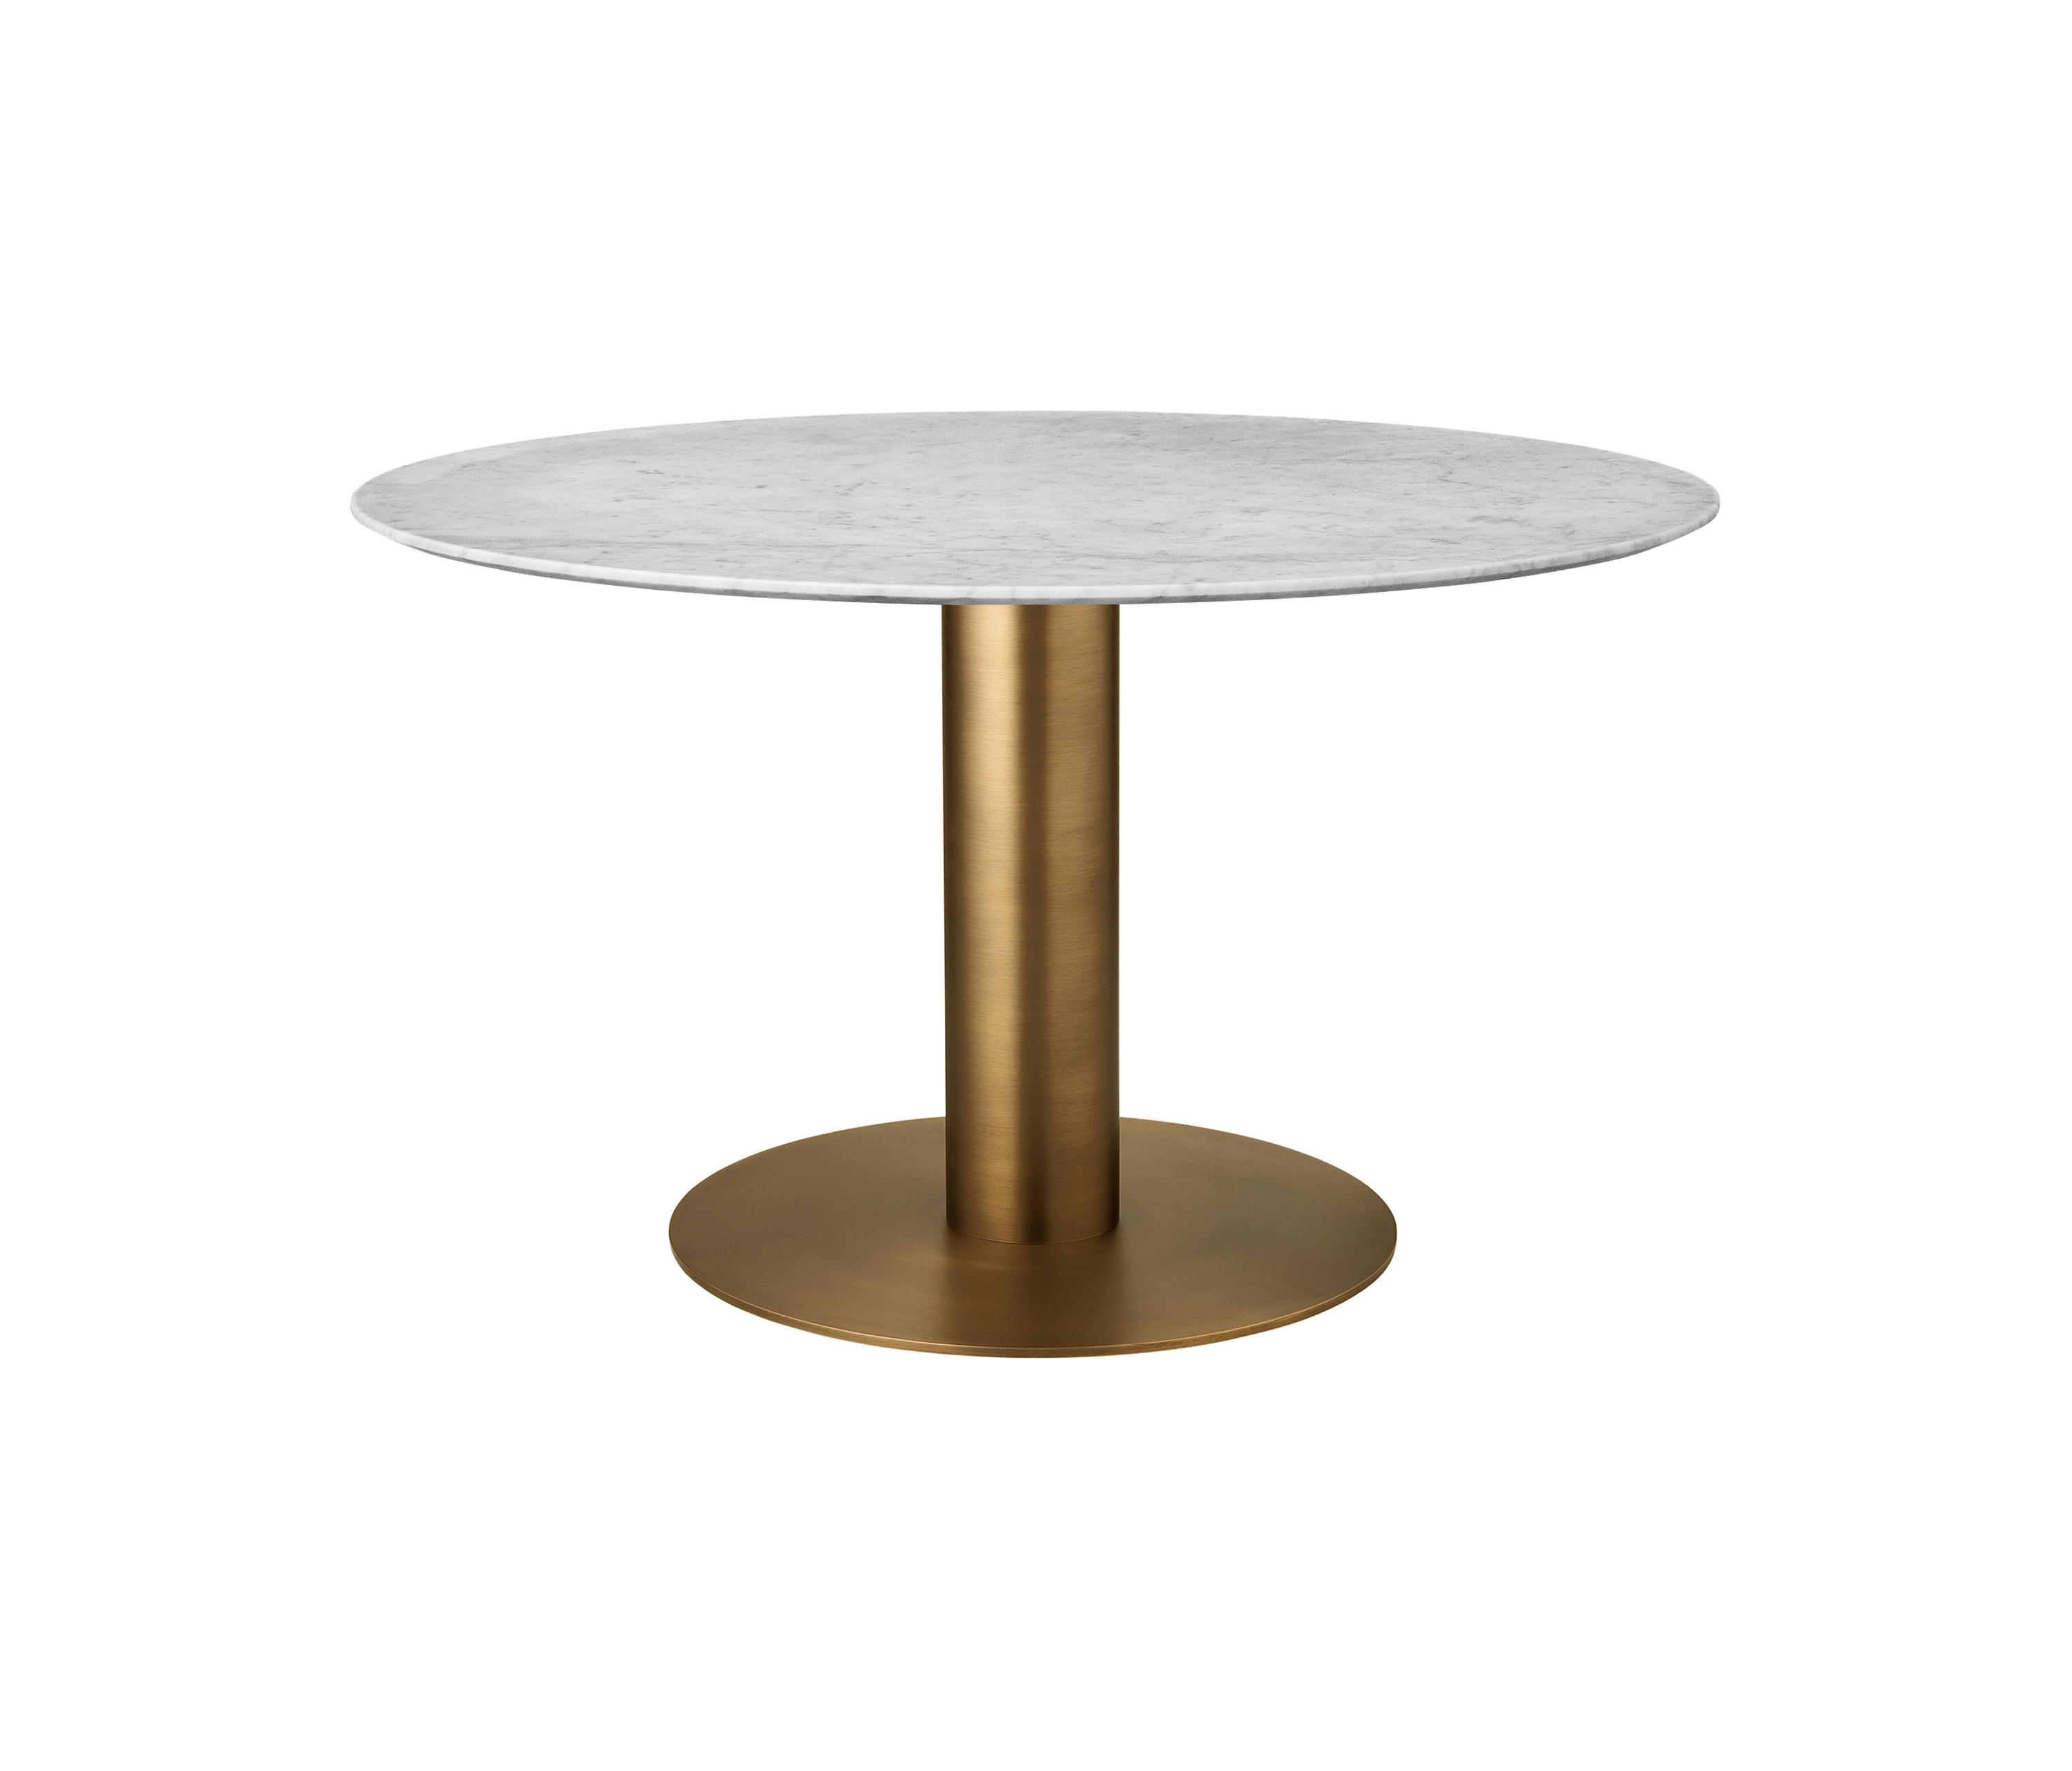 Enorm GUBI 2.0 DINING TABLE - ROUND - Dining tables from GUBI | Architonic AG-99